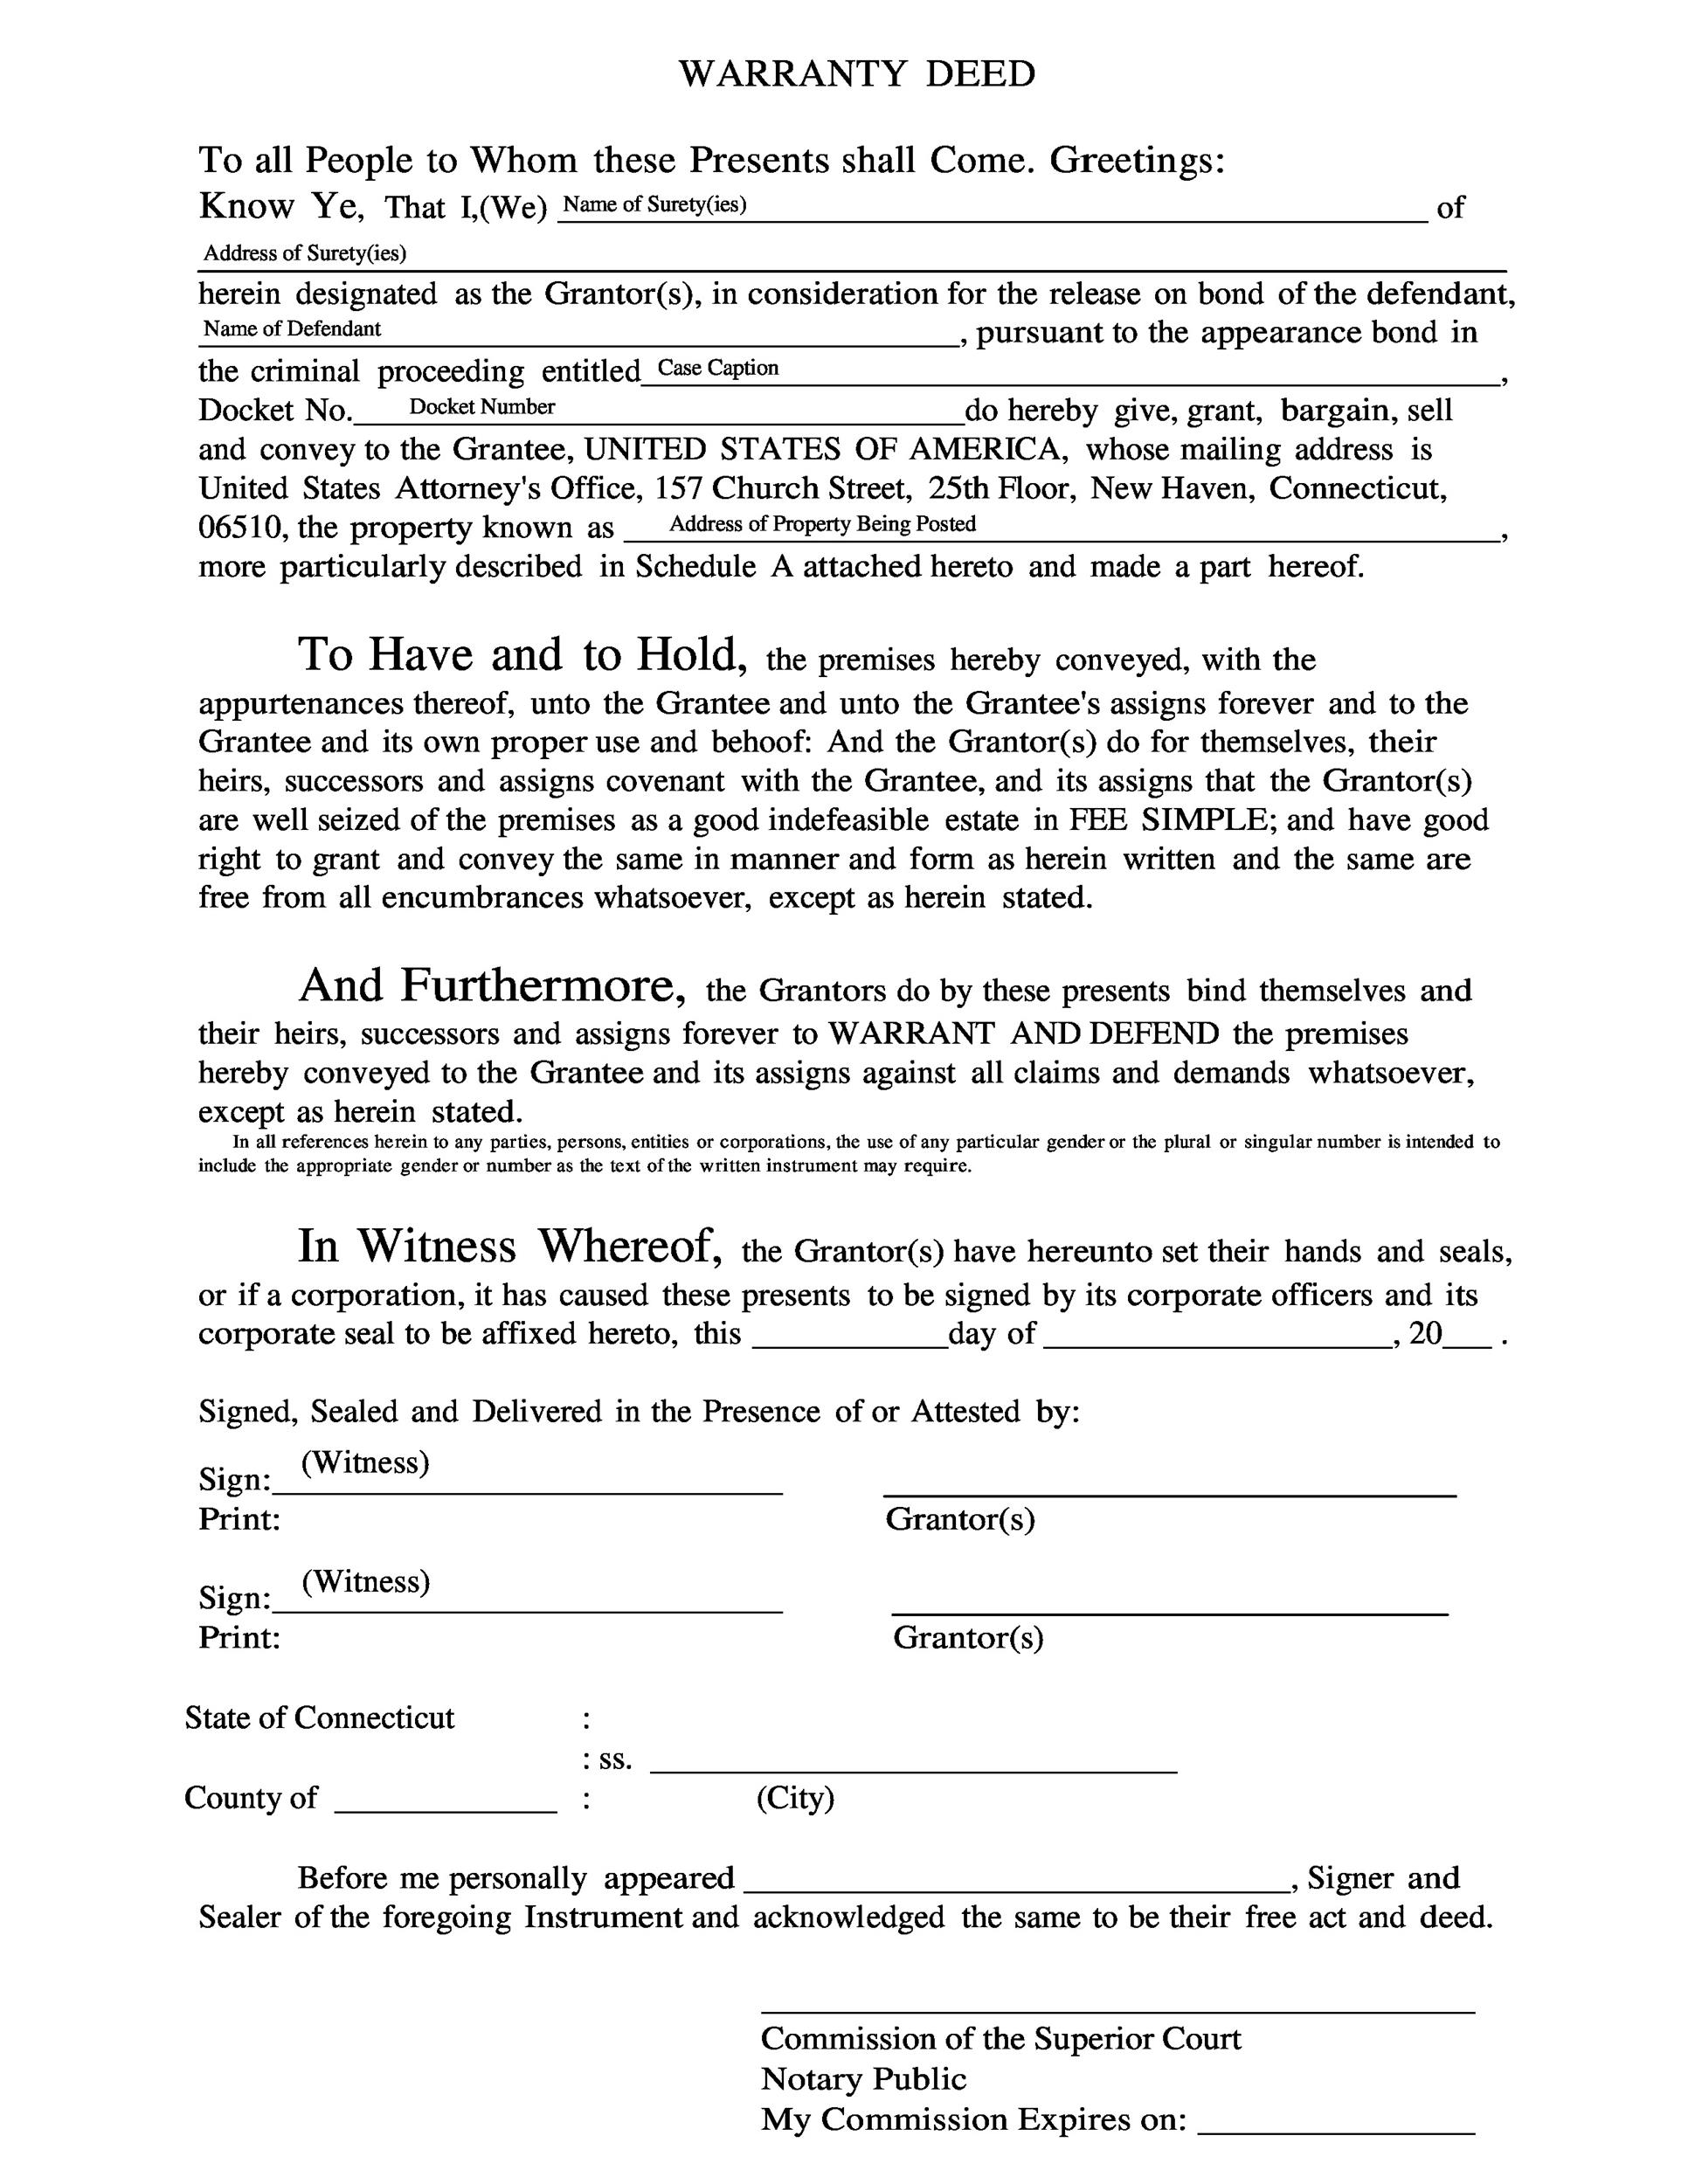 Free Warranty deed template 35